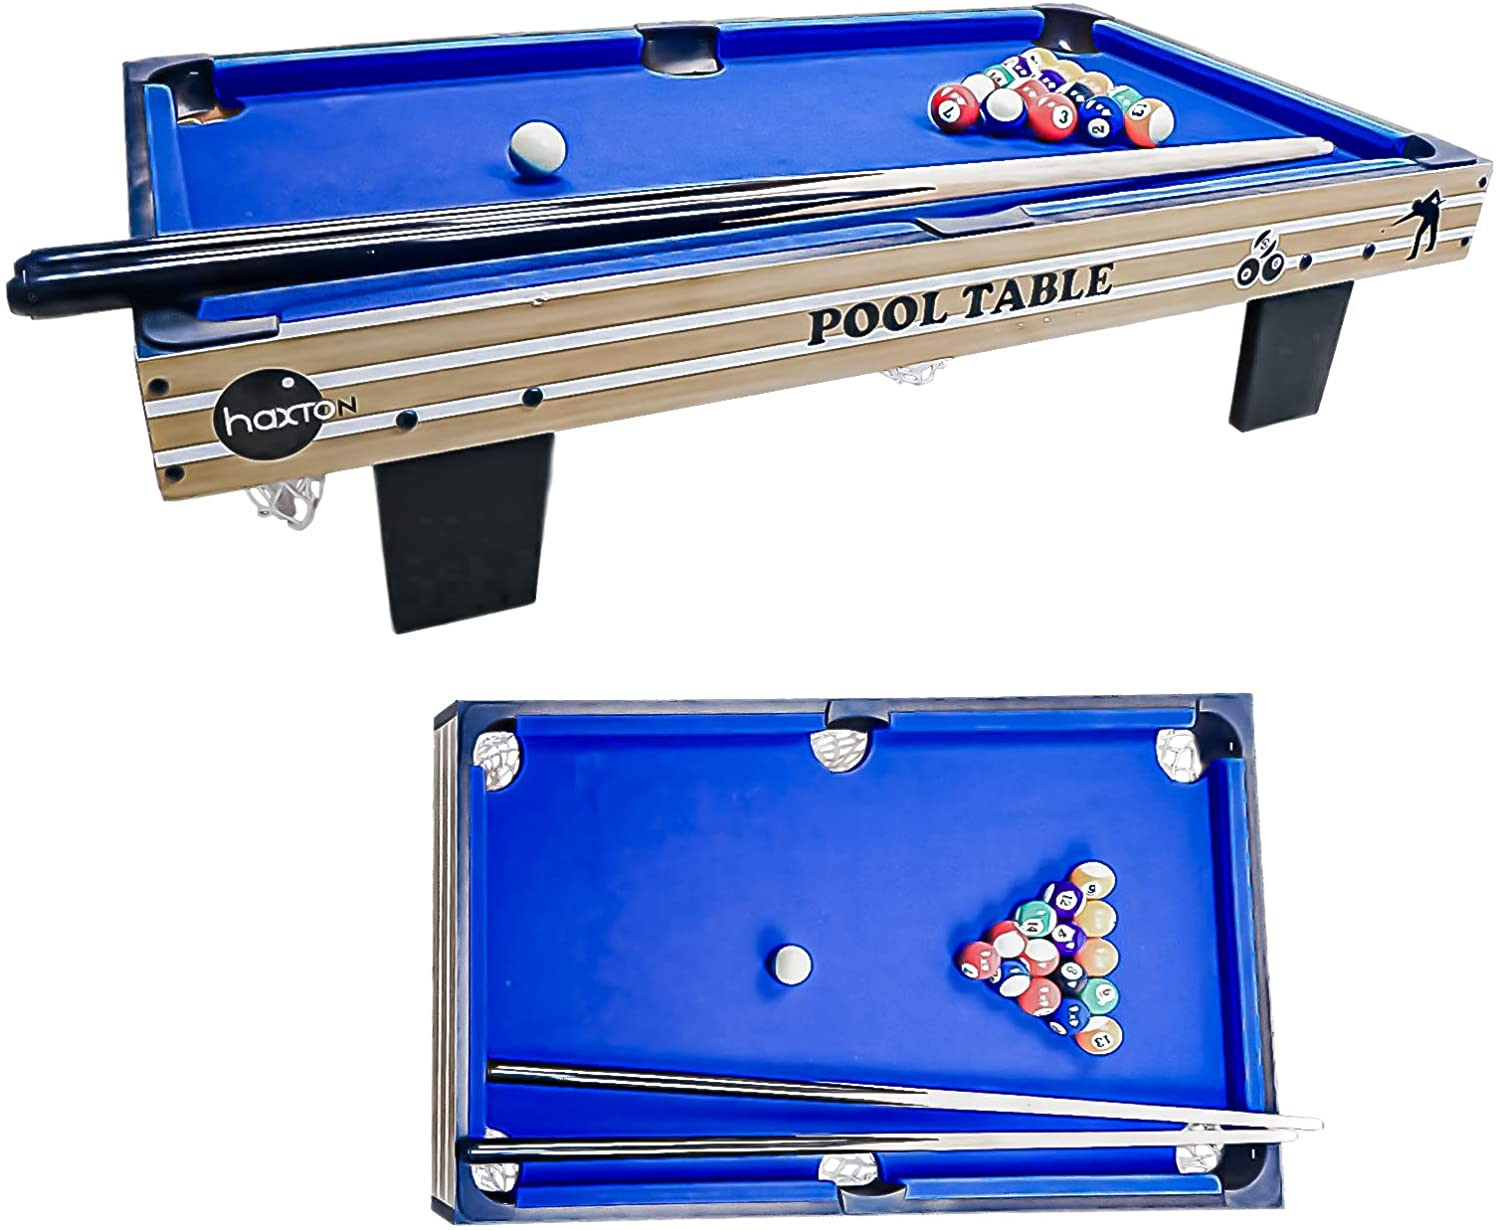 "haxTON Tabletop Pool Table Set, Mini Pool Table,36""x20""x3.14"", Travel-Size Billiard Tables, Game Table, Pool Games, Cues, and Rack, Balls"